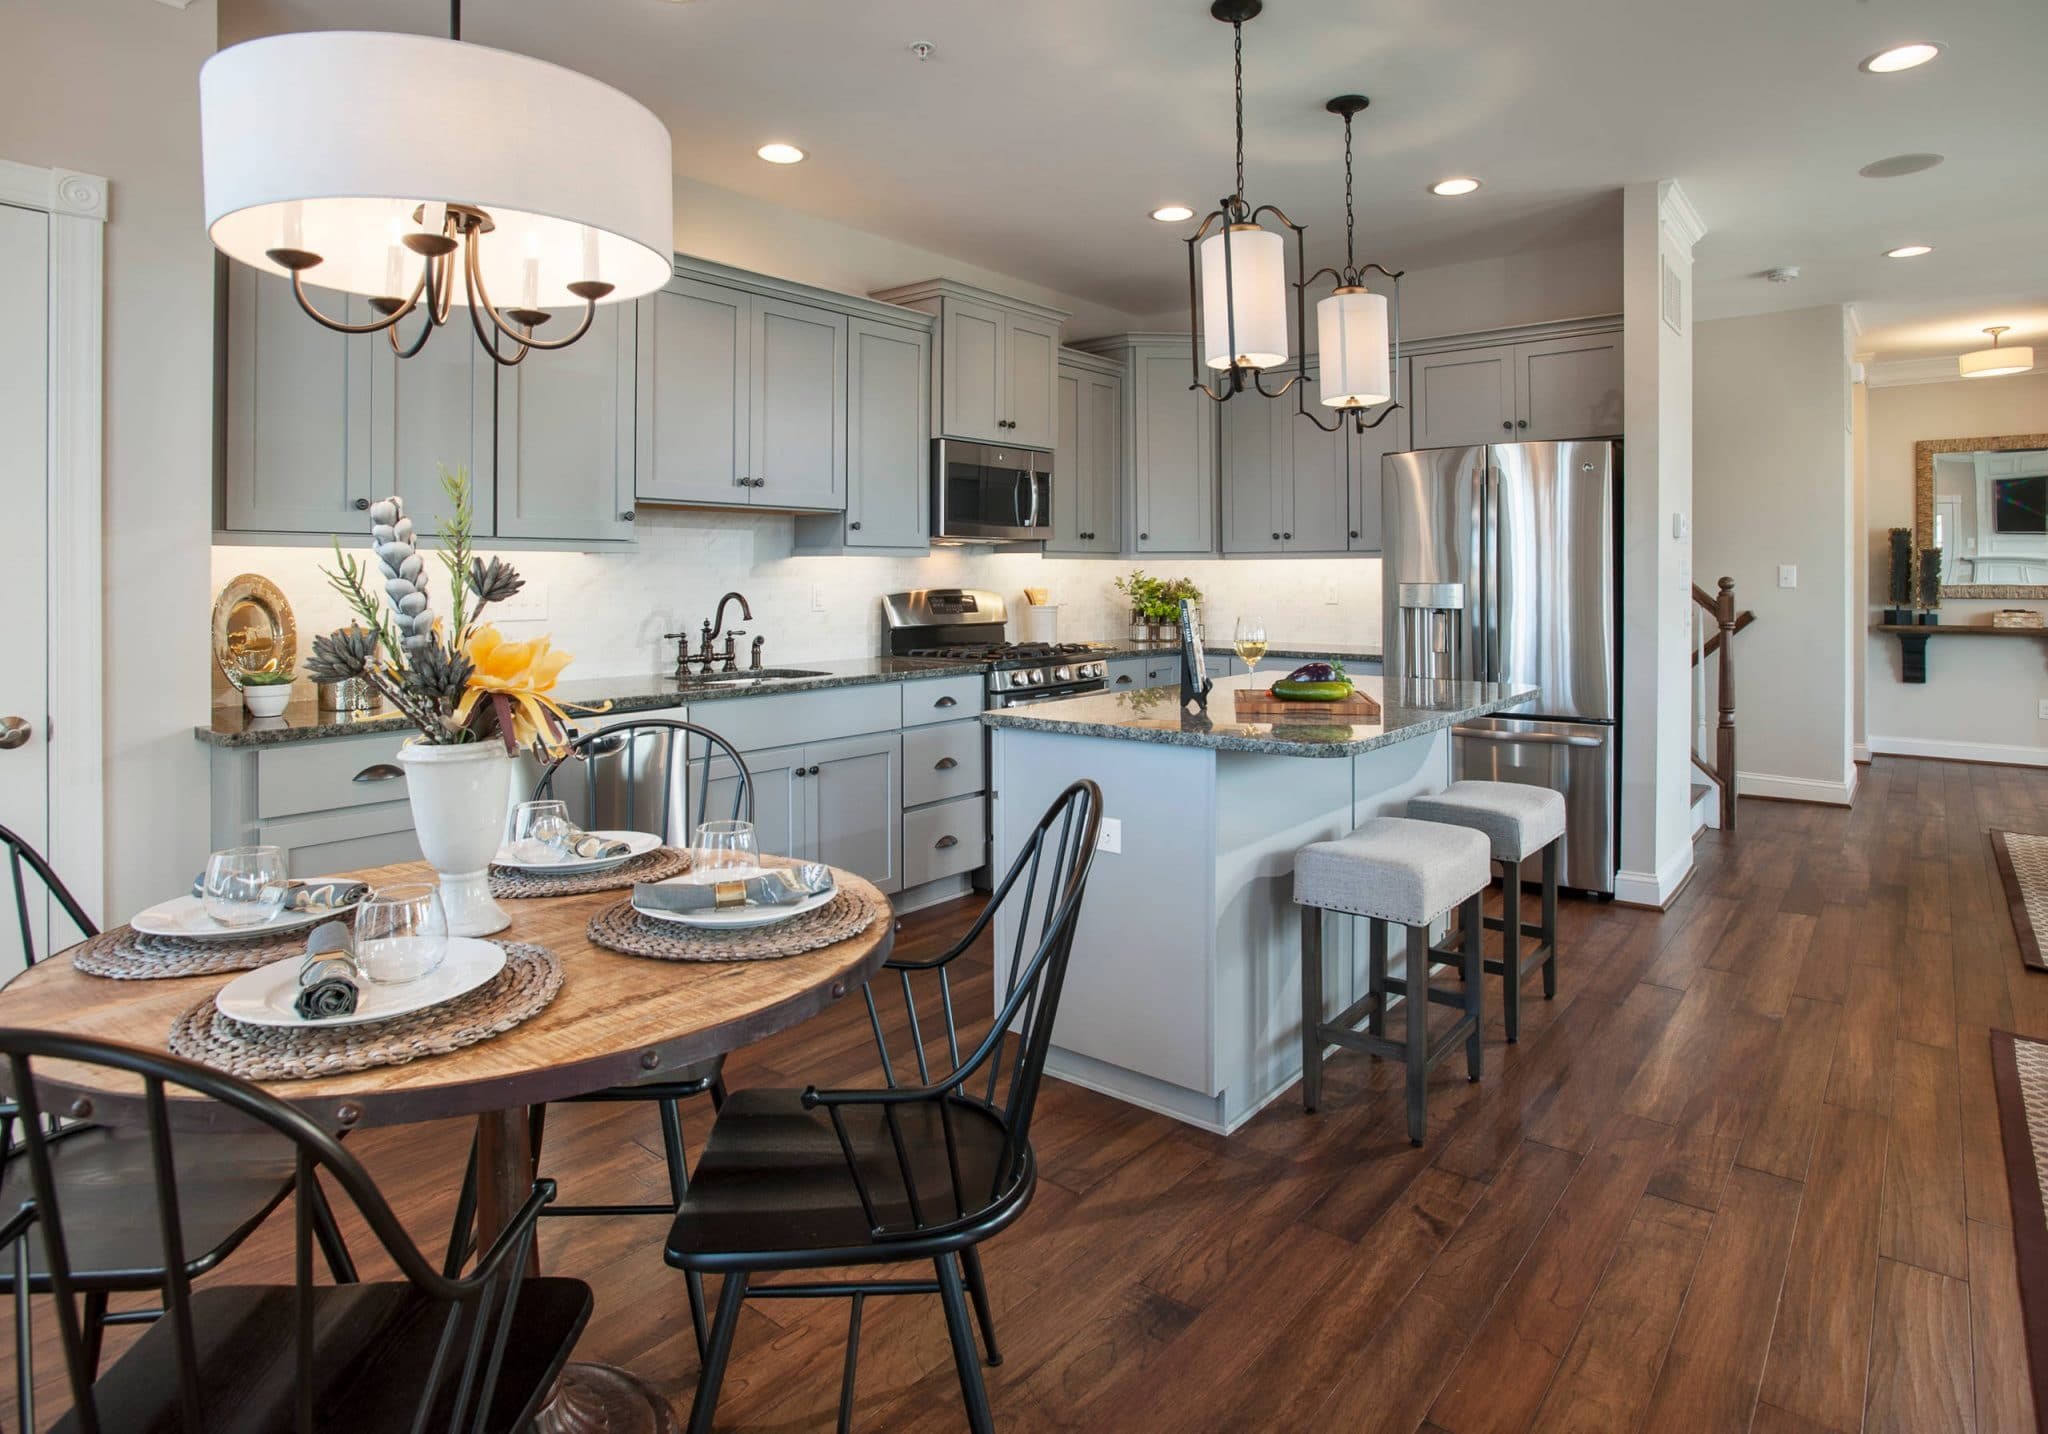 framed traditional american style kitchen